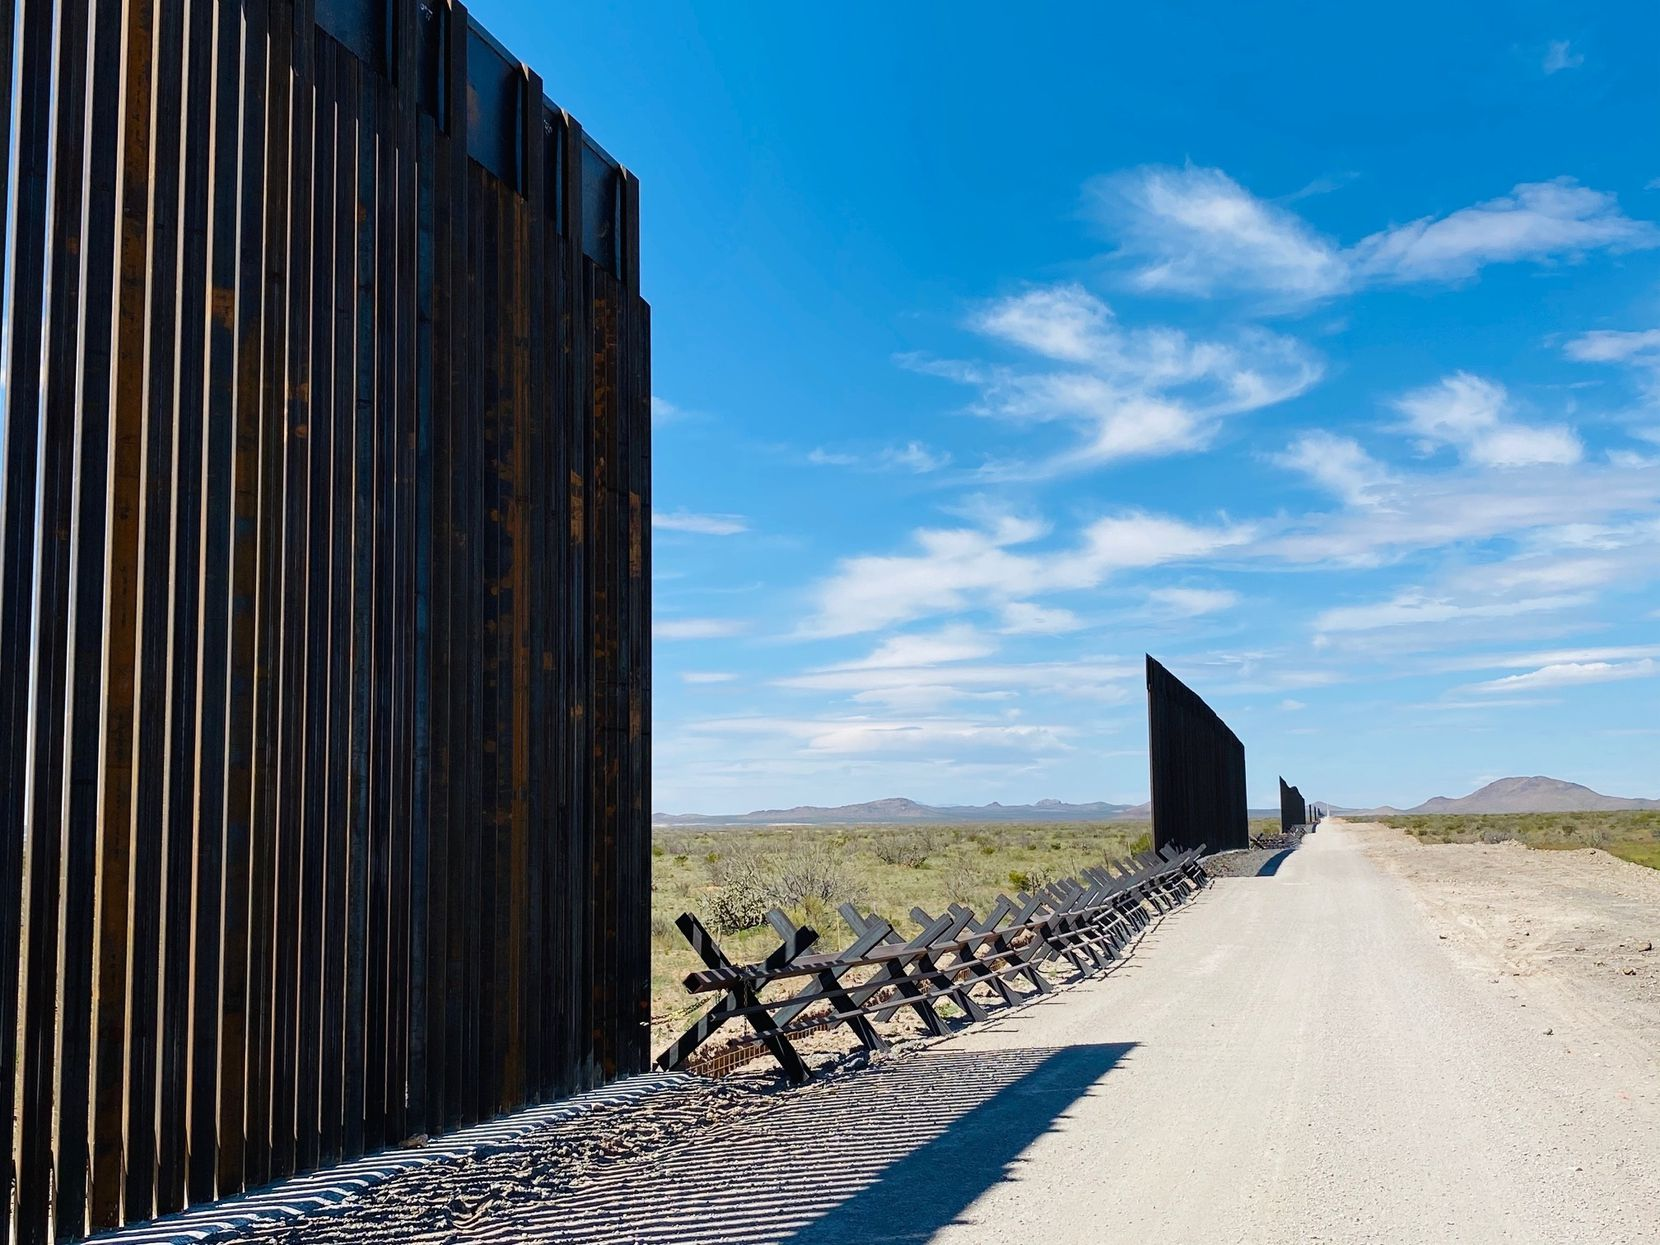 With the pace of border wall construction lagging behind President Donald Trump's goal of completing 500 miles by year's end, new fencing is slowly replacing old barriers, with gaps in between, near Highway 9 near Columbus, N.M.